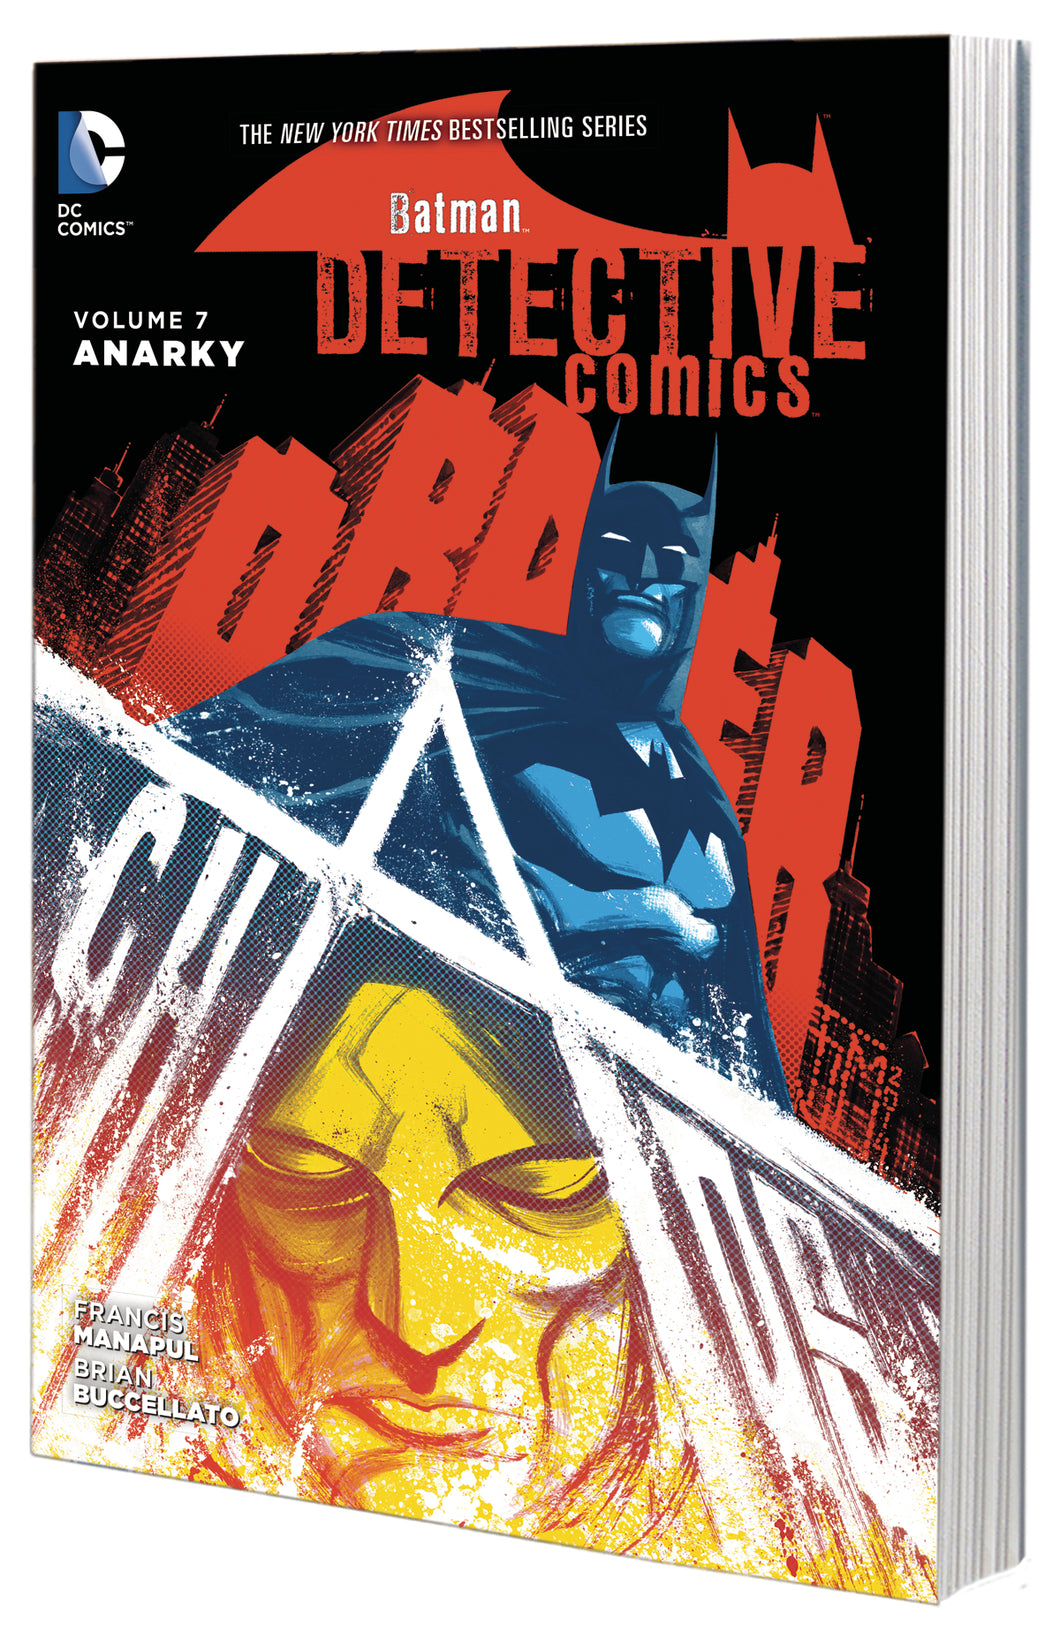 BATMAN DETECTIVE COMICS TP VOL 07 ANARKY